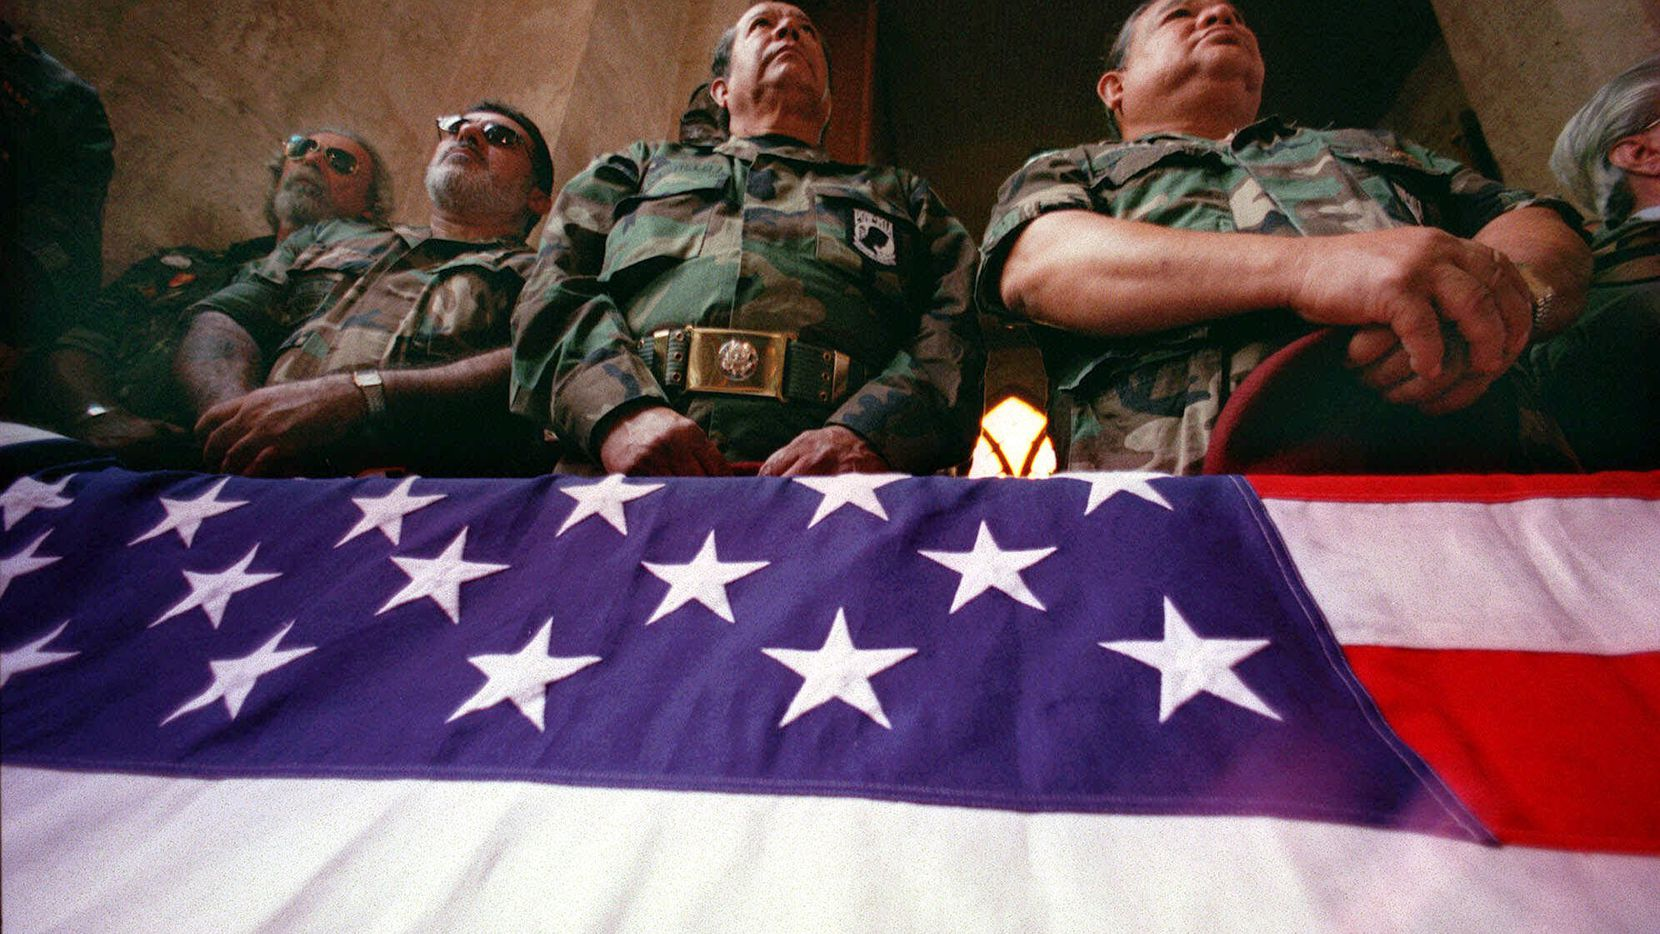 Members of Texas Vietnam Veterans honored Roy Benavidez at his funeral in 1998. The flag had draped the casket of Benavidez.